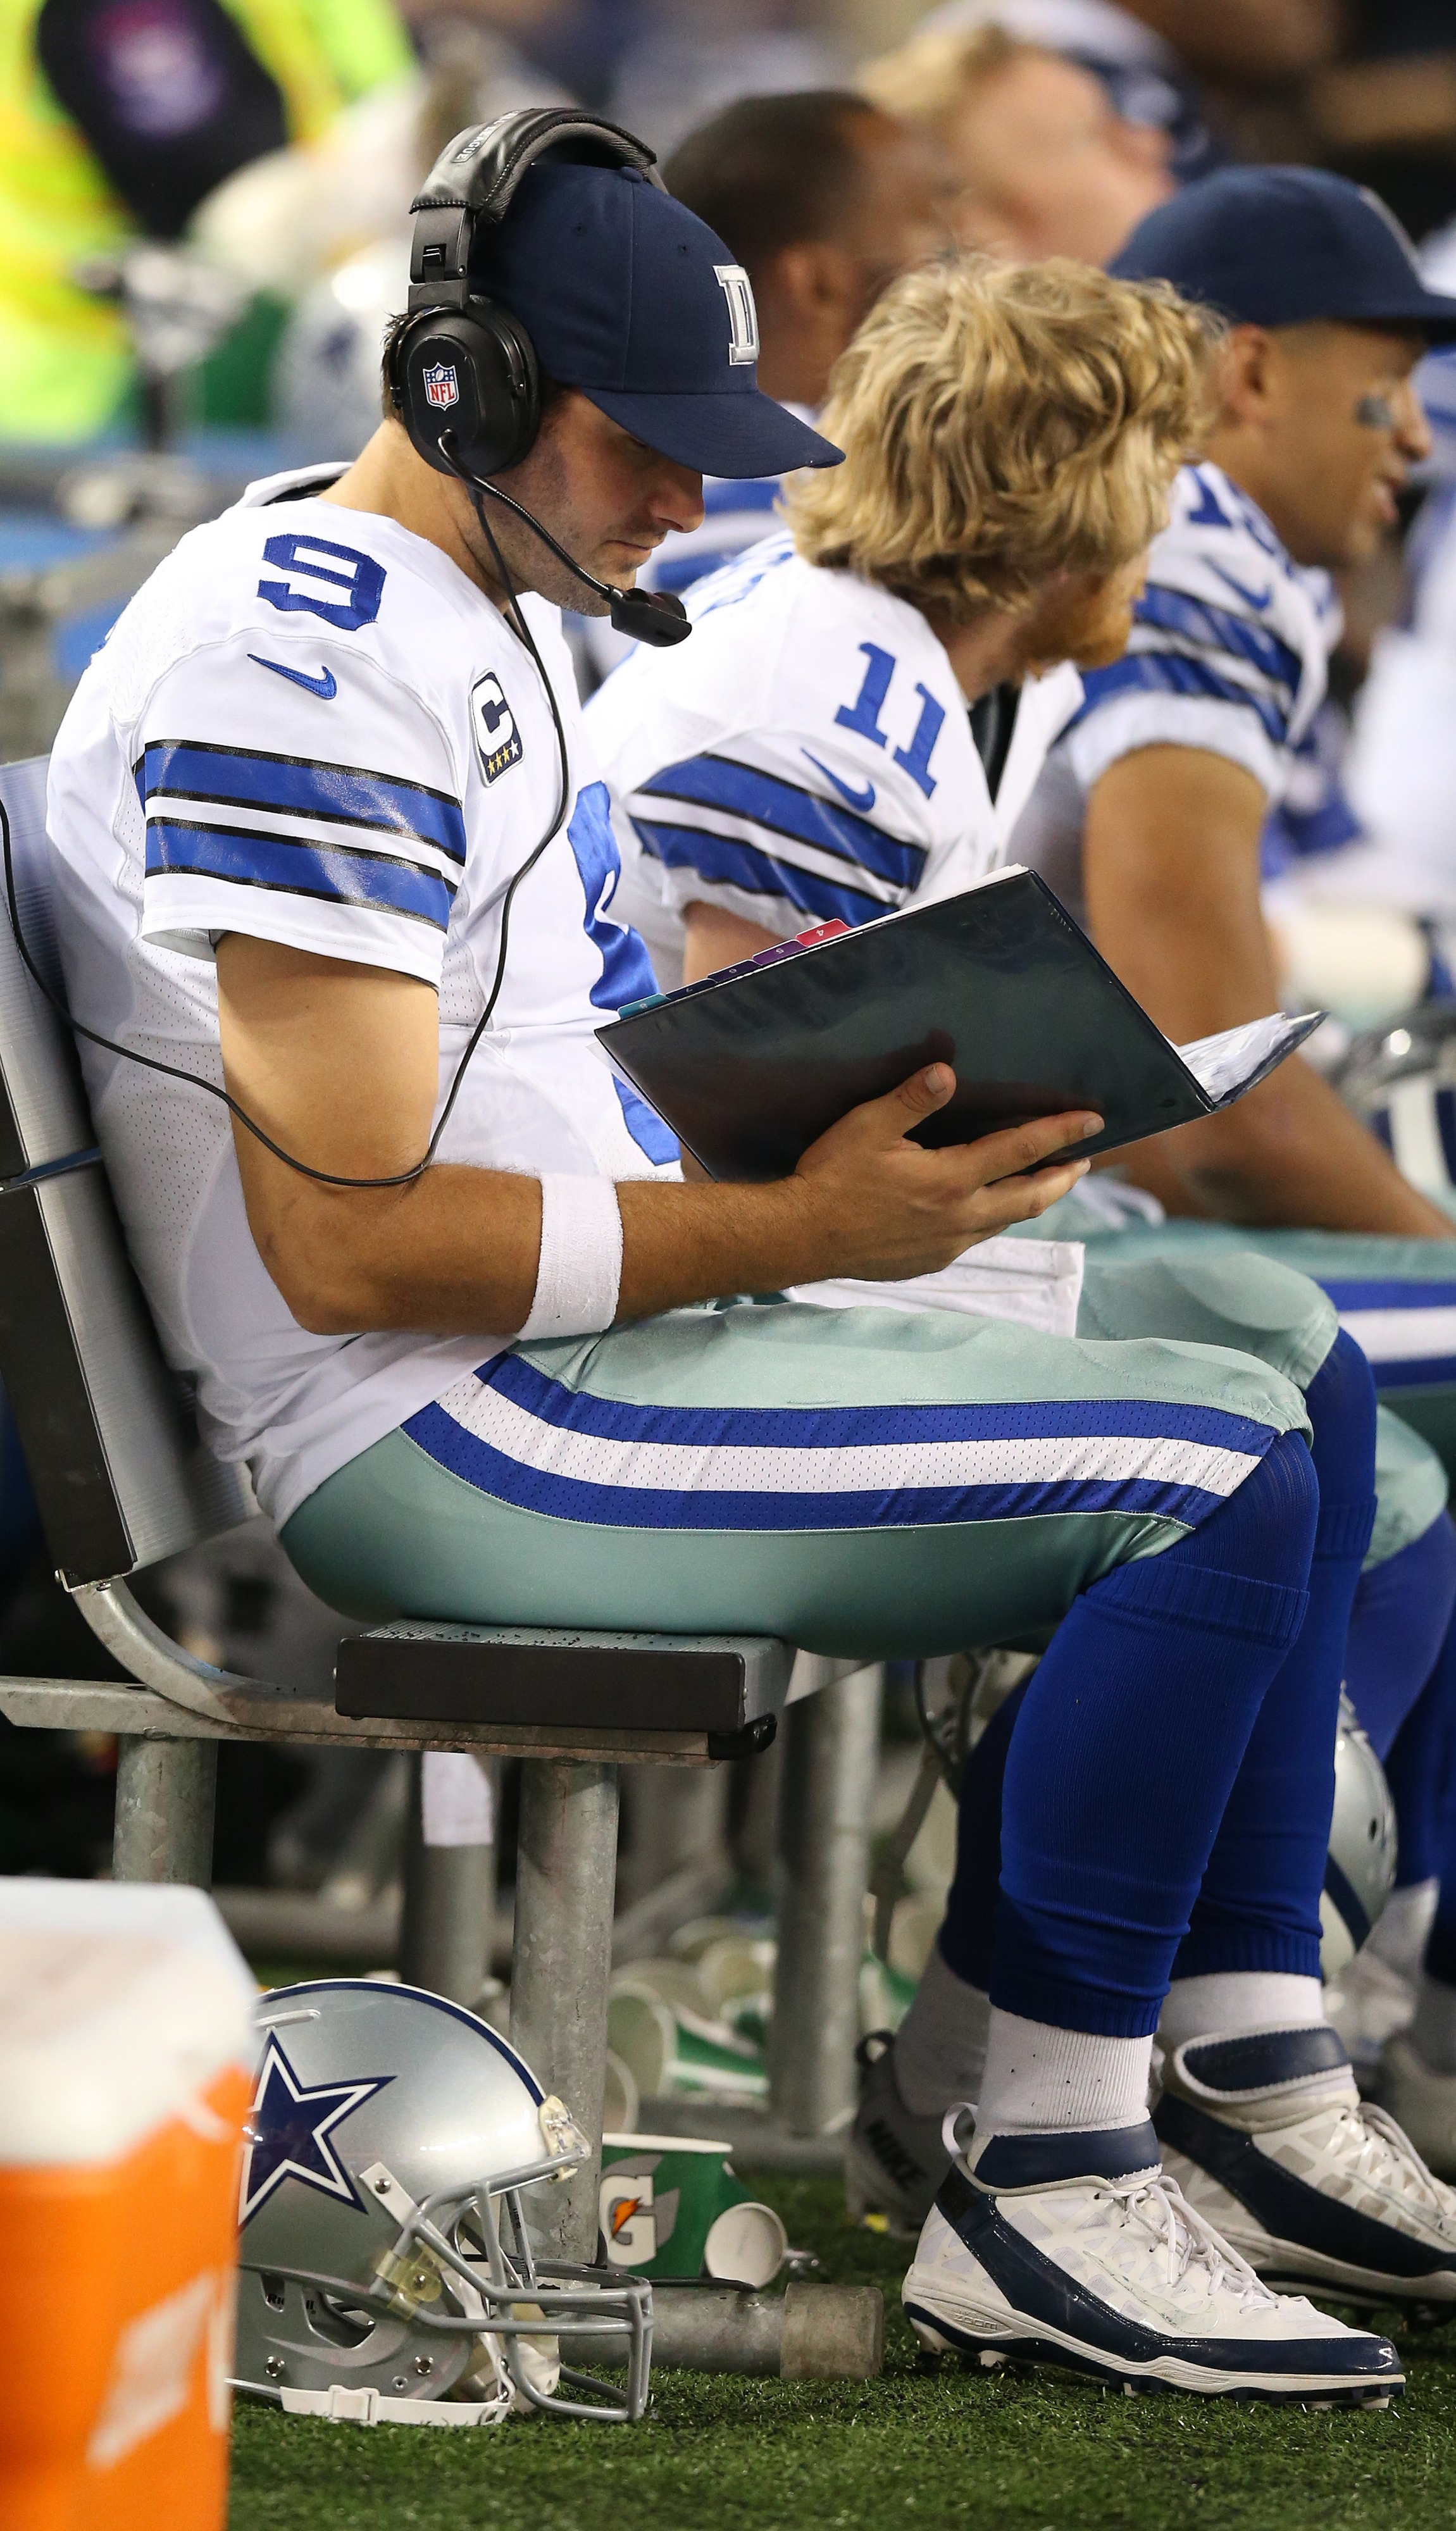 Looking at the playbook